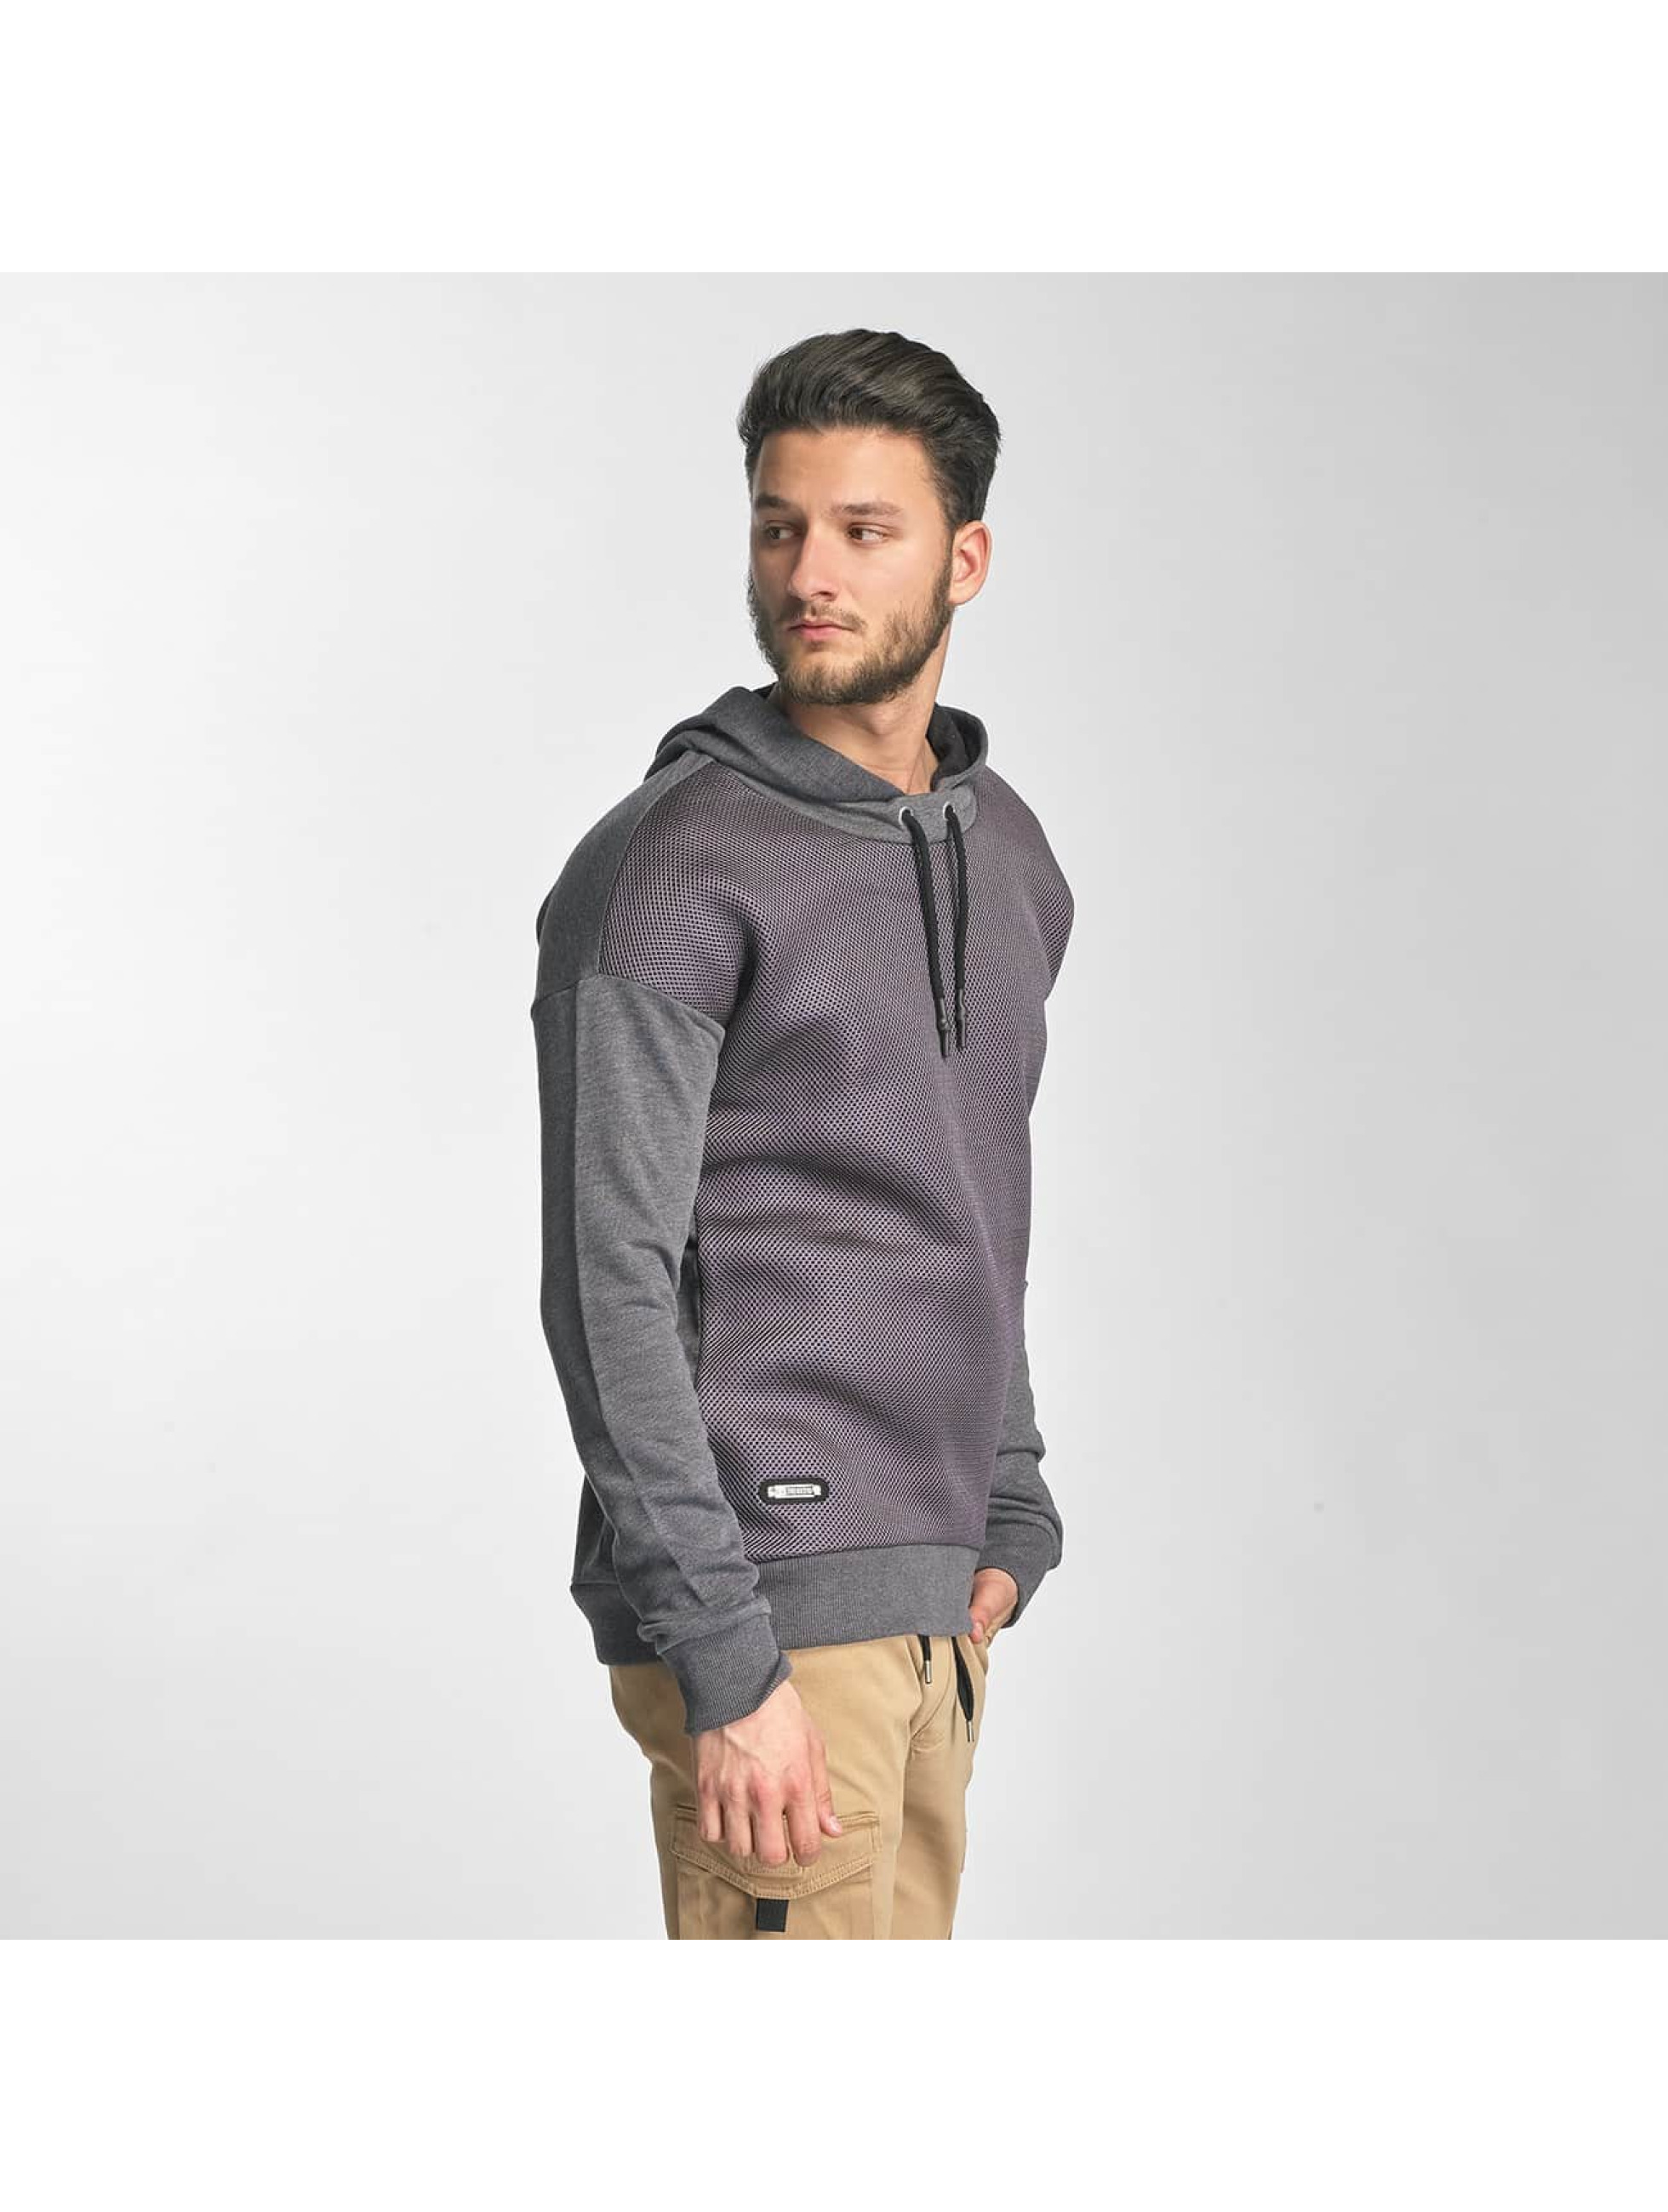 Red Bridge Carbon Network Hoody Anthracite Sale Angebote Reuthen